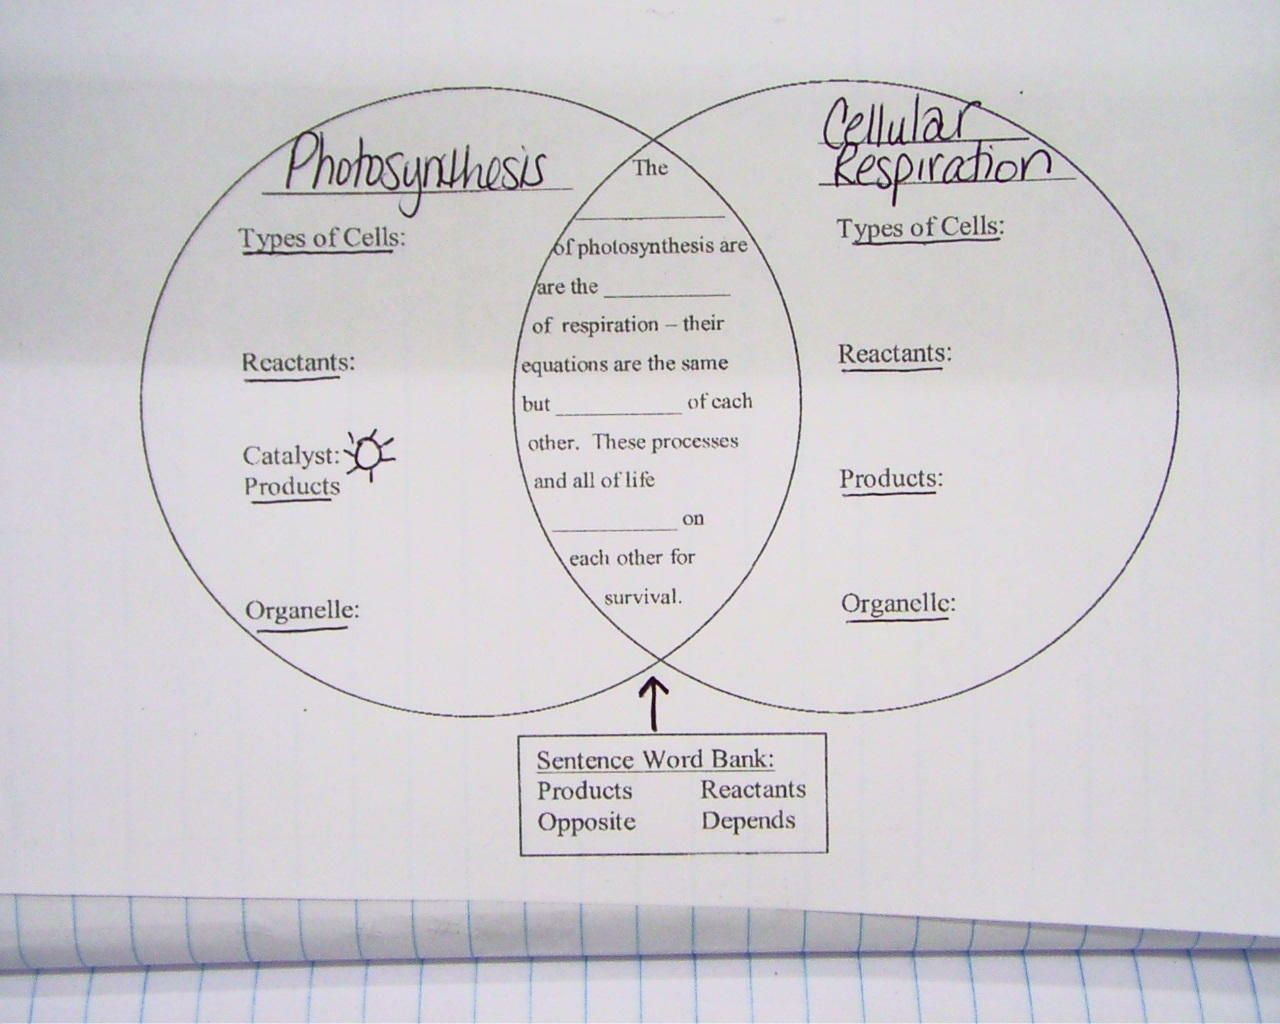 Cellular Respiration Diagram Worksheet 100101 Cellular